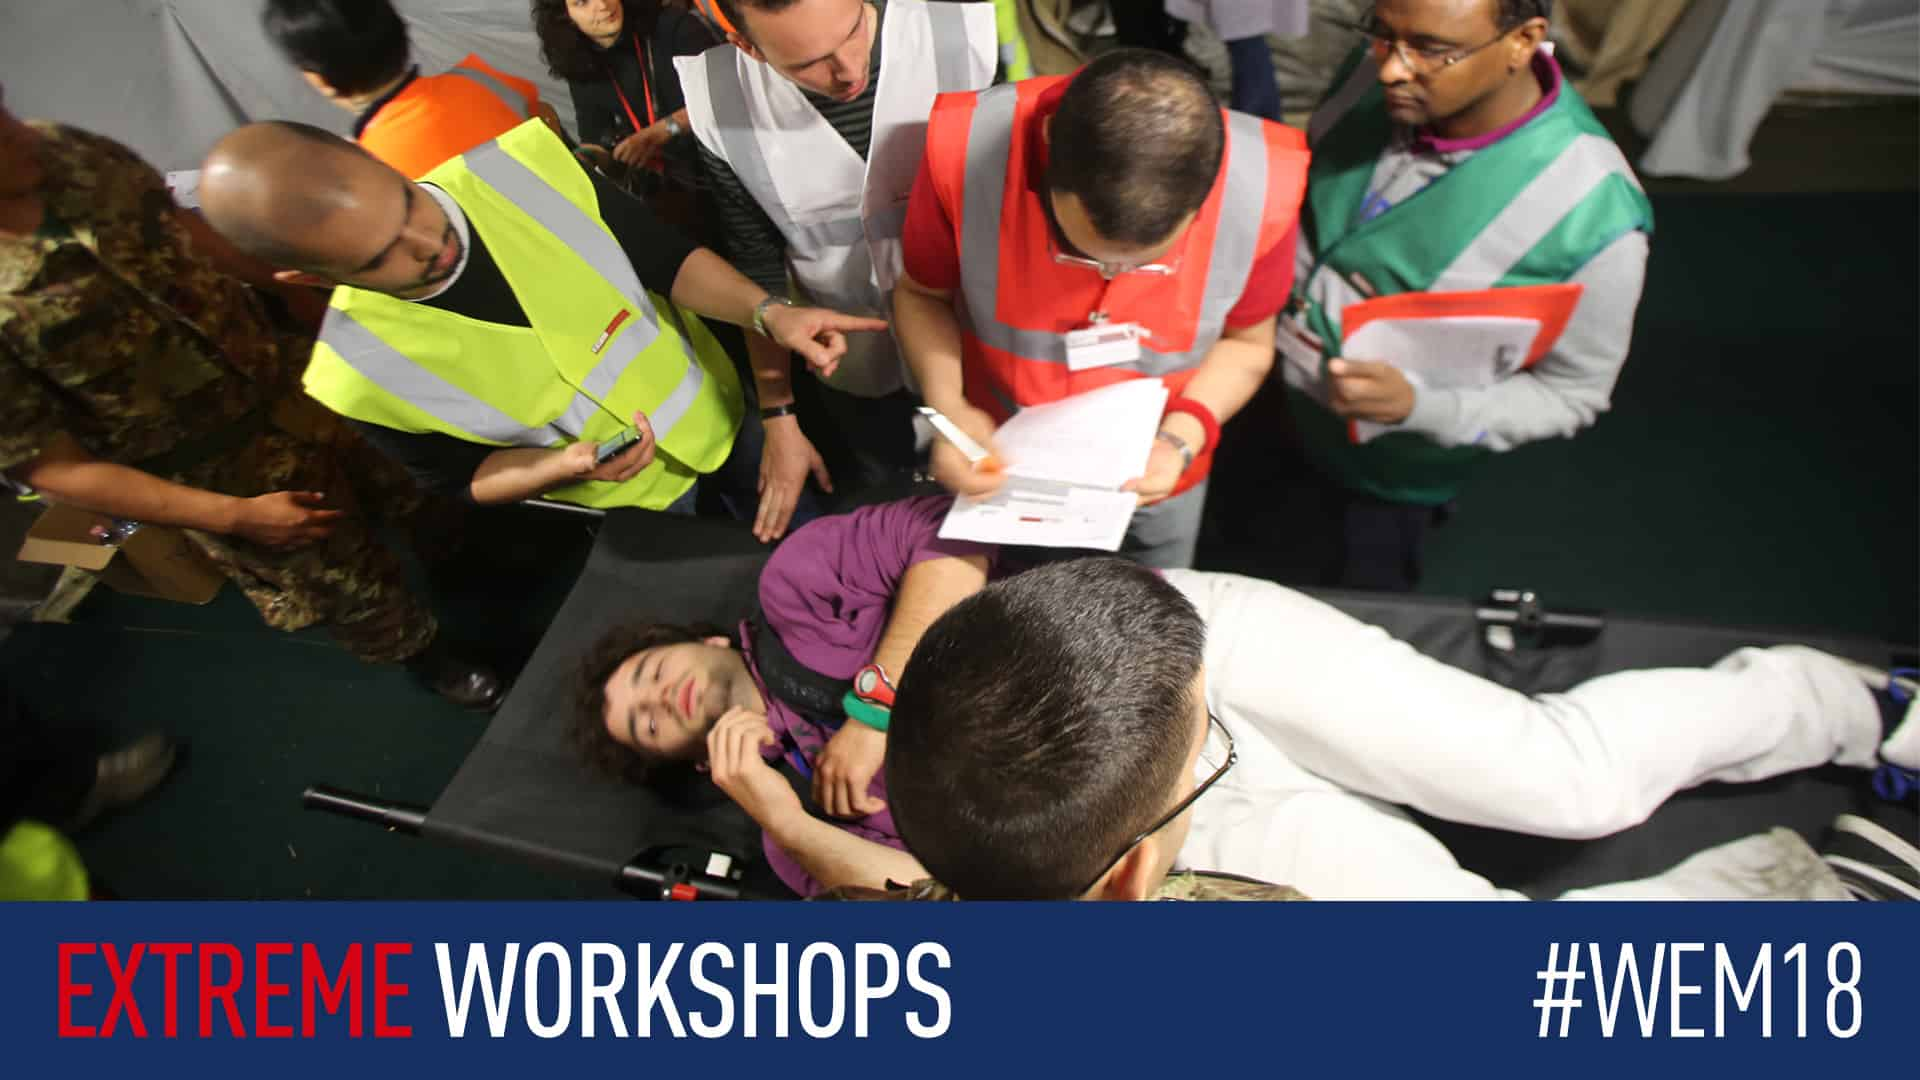 Discover and experience our wide range of interactive workshops at #WEM18